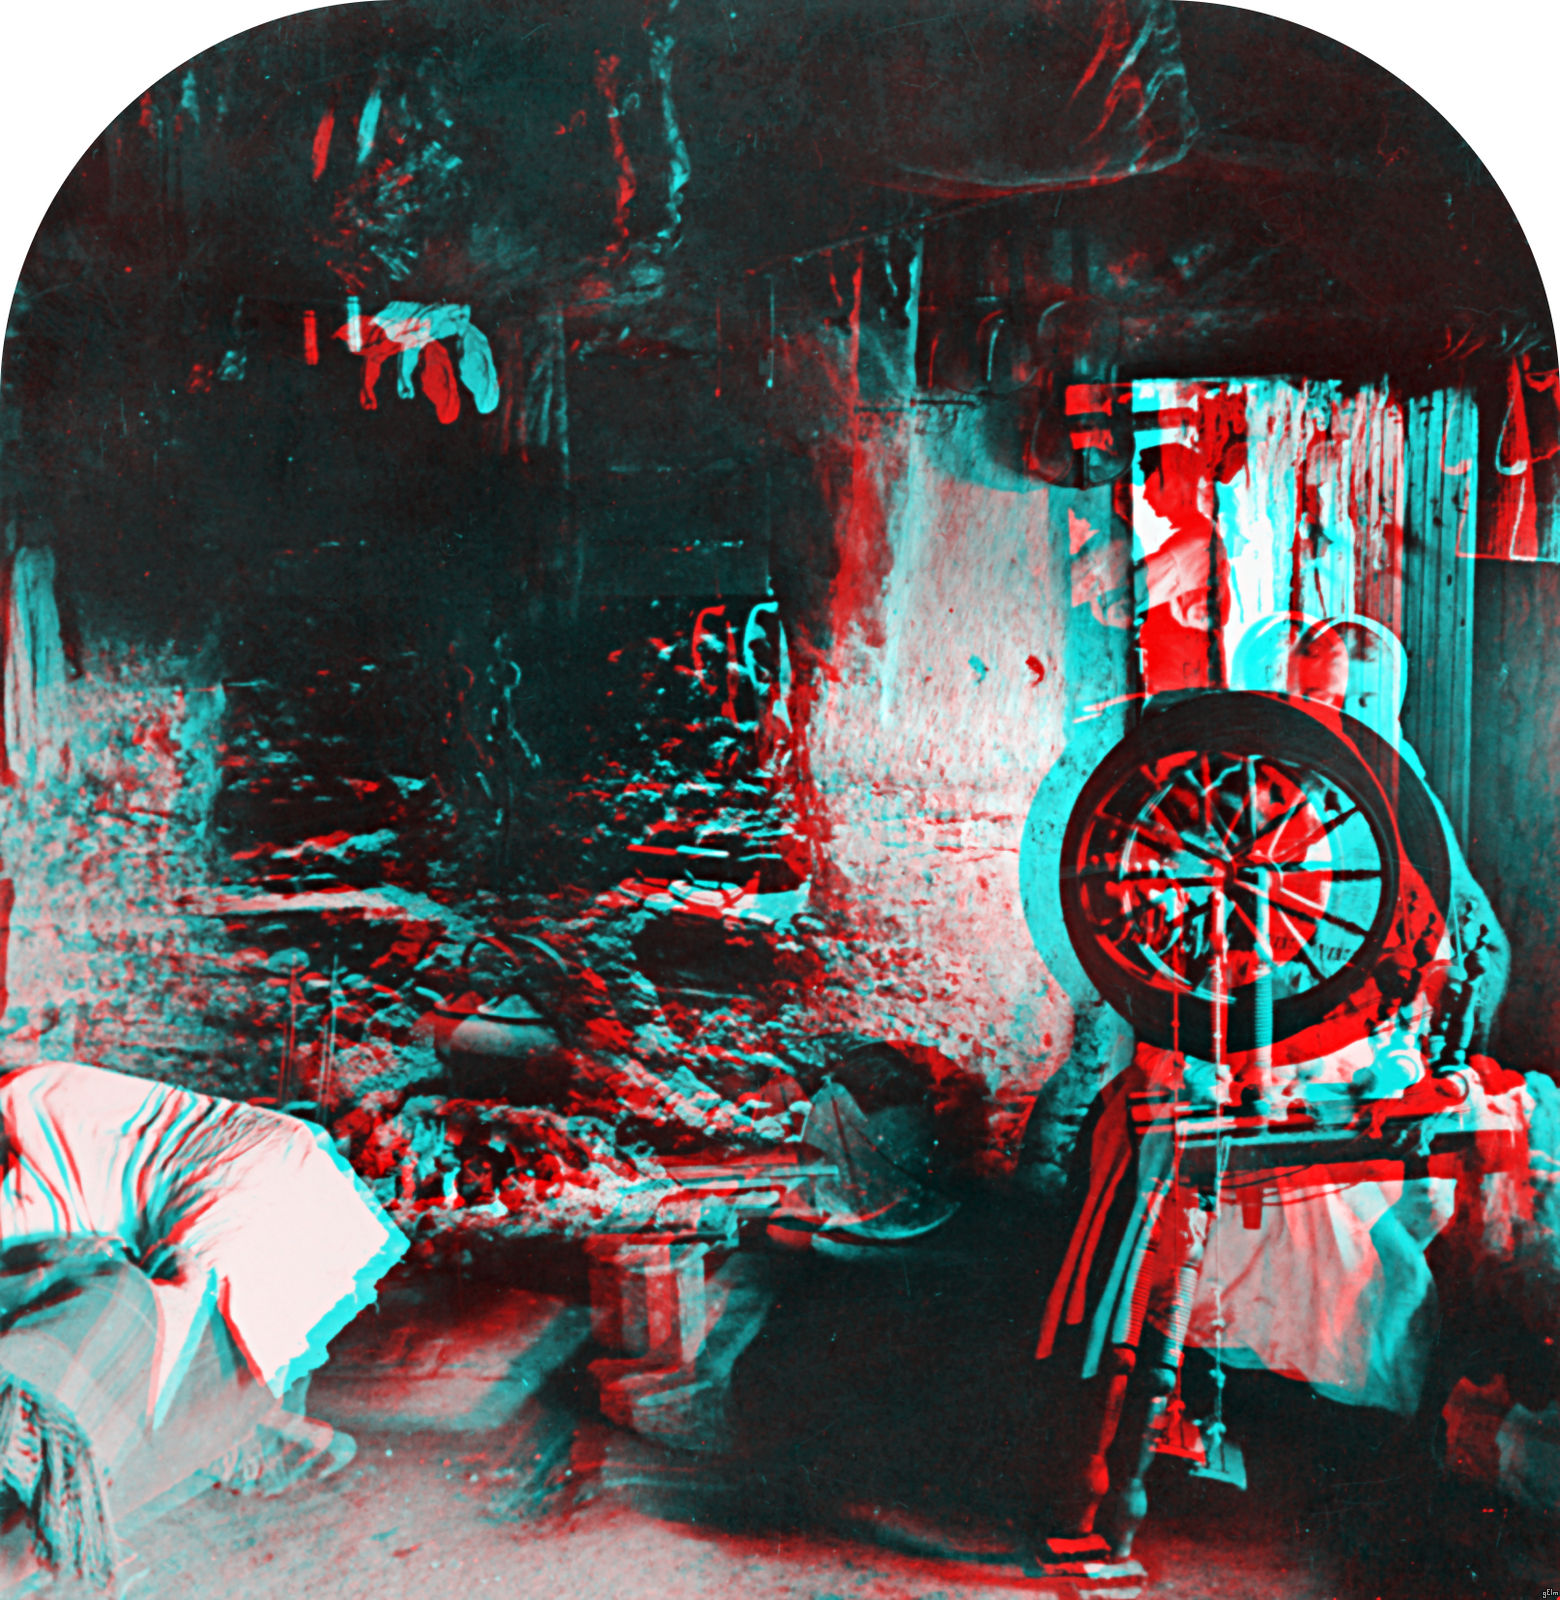 Stoic Decay: 3D Library of Congress: Five